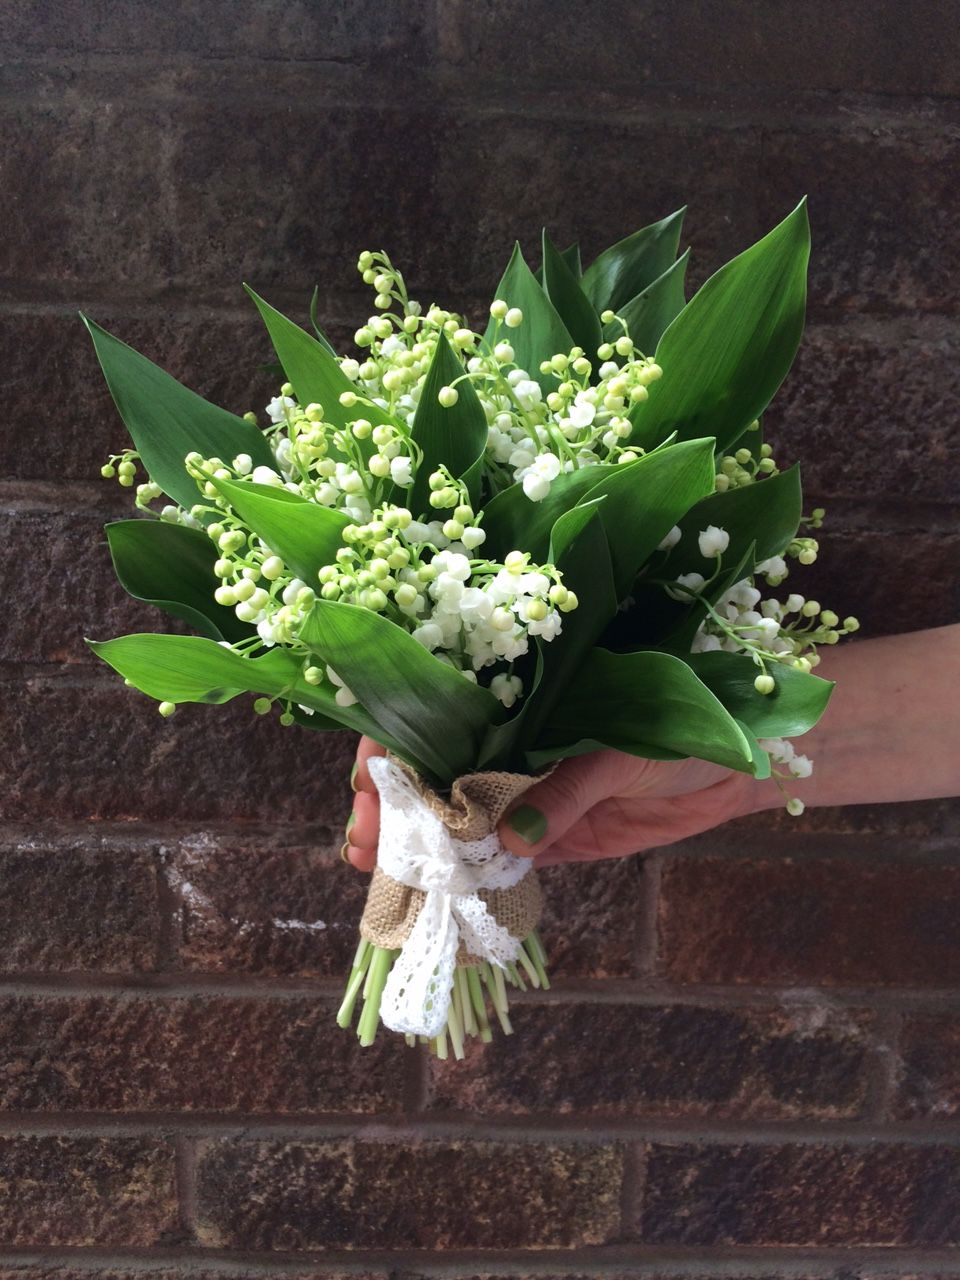 Heavenly Scented Tied Posy Of Lilyofthevalley Its Just So Simple